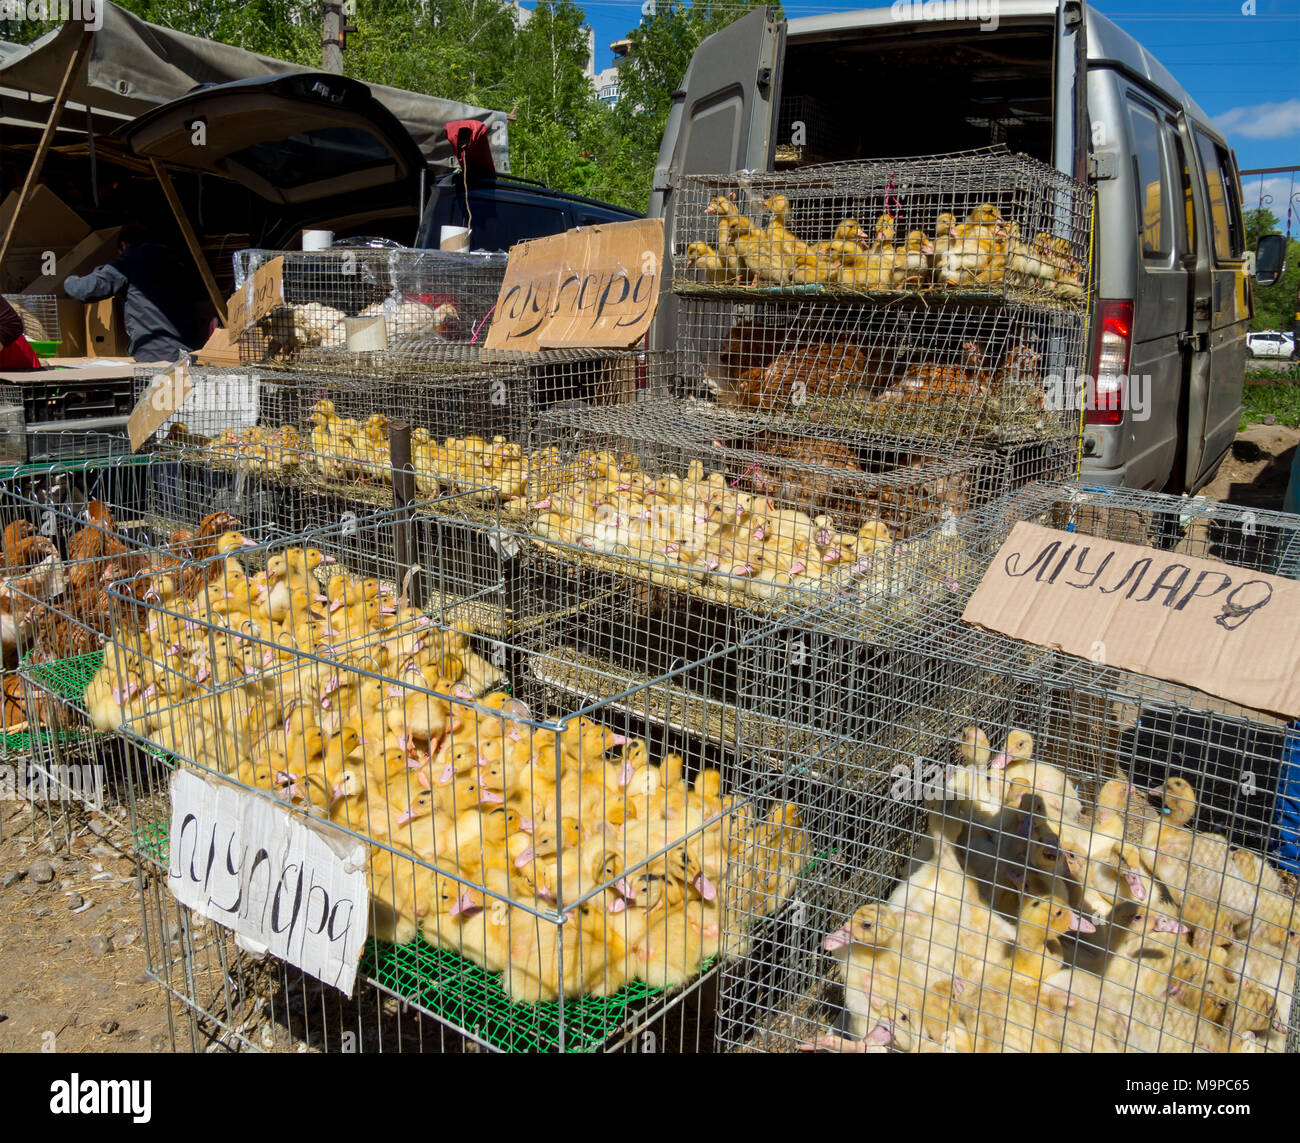 Voronezh, Russia - May 13, 2017: Row with poultry on the street market - Stock Image